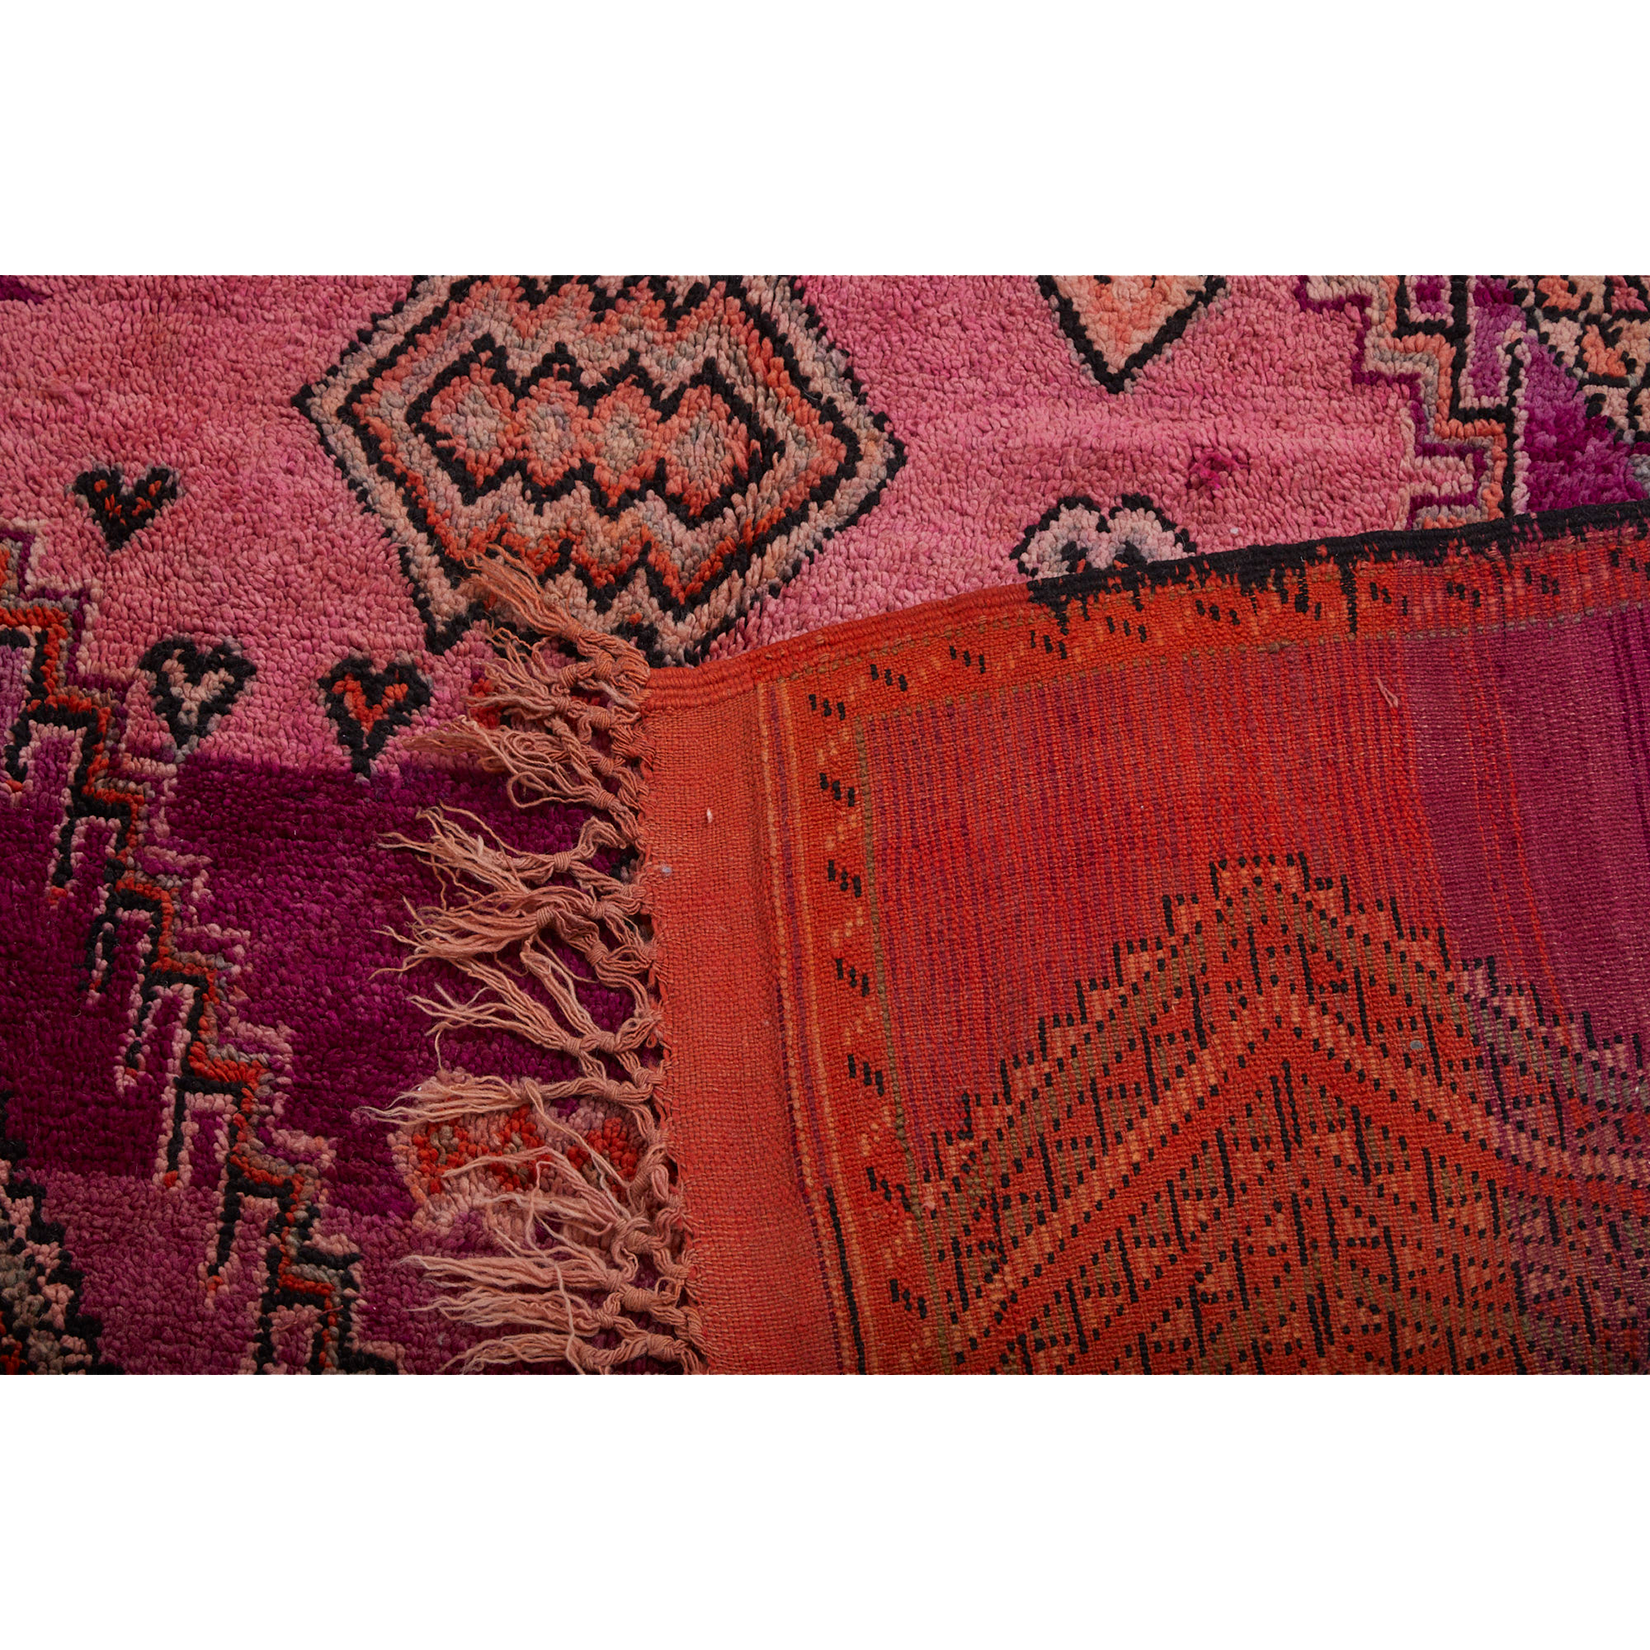 Back side of large purple Moroccan rug - Kantara | Moroccan Rugs